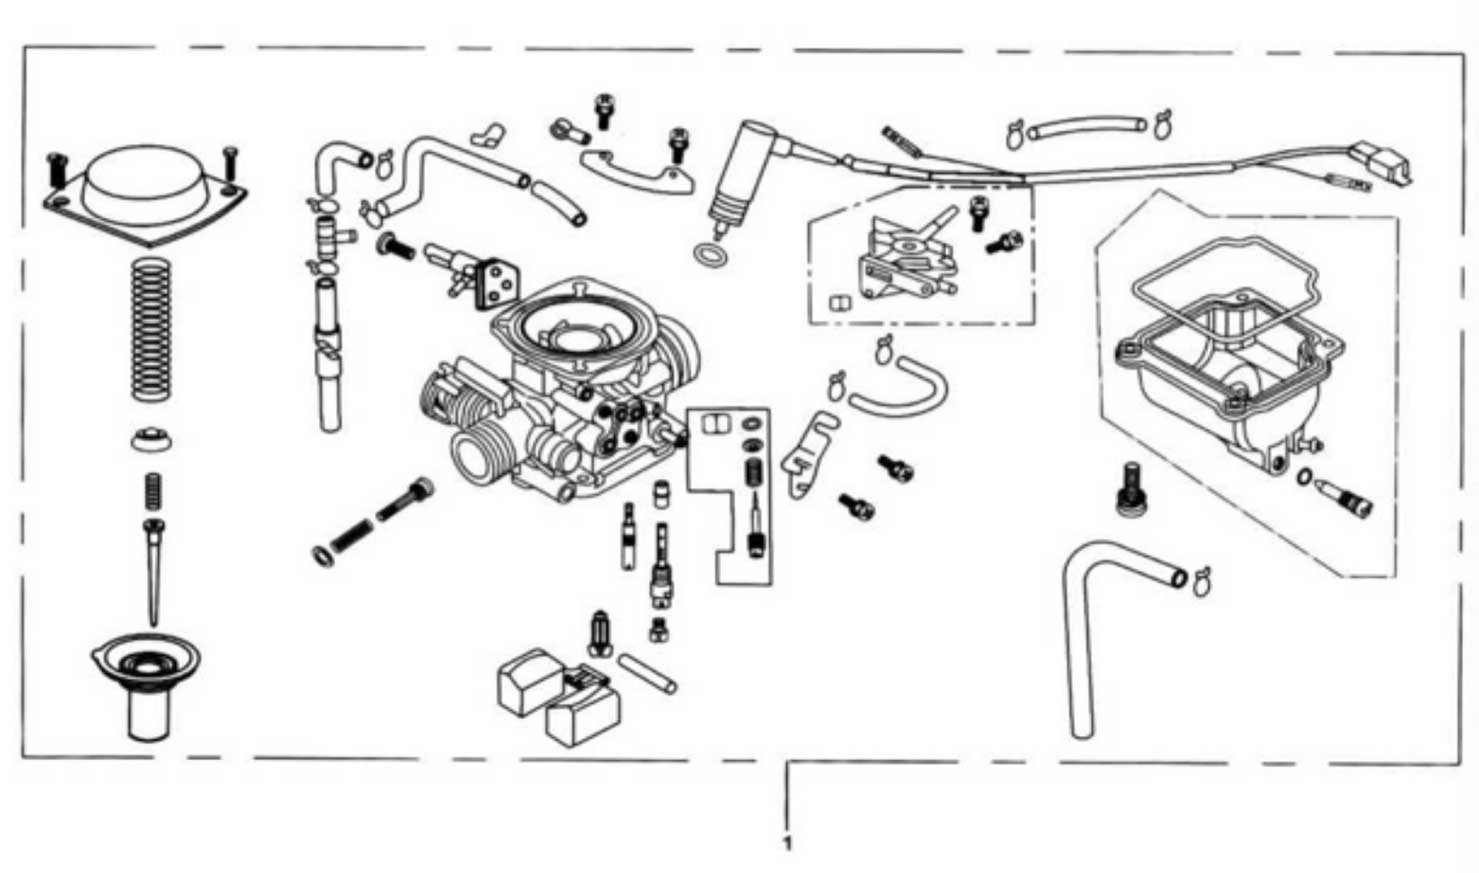 hight resolution of hammerhead gt 150 wiring diagram 32 wiring diagram jcwhitney dune buggy wiring dune buggy wiring for